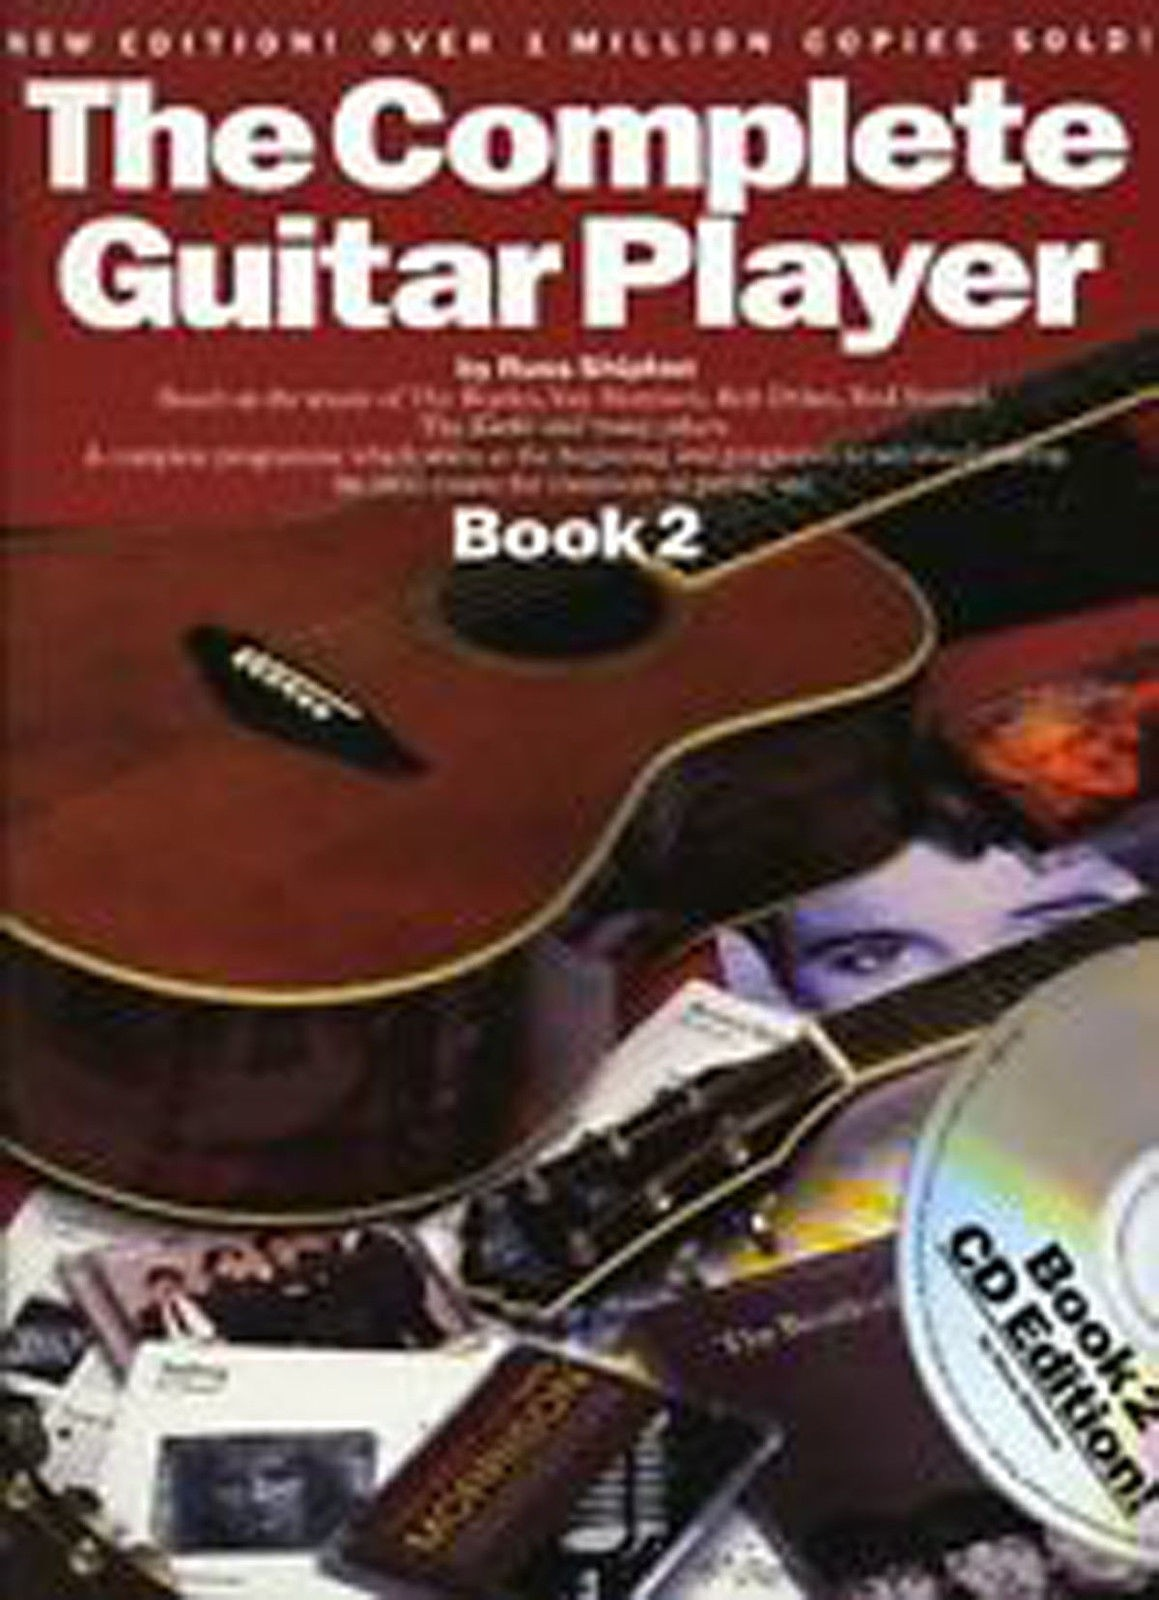 The Complete Guitar Player Book 2 Russ Shipton Acoustic B60 S163